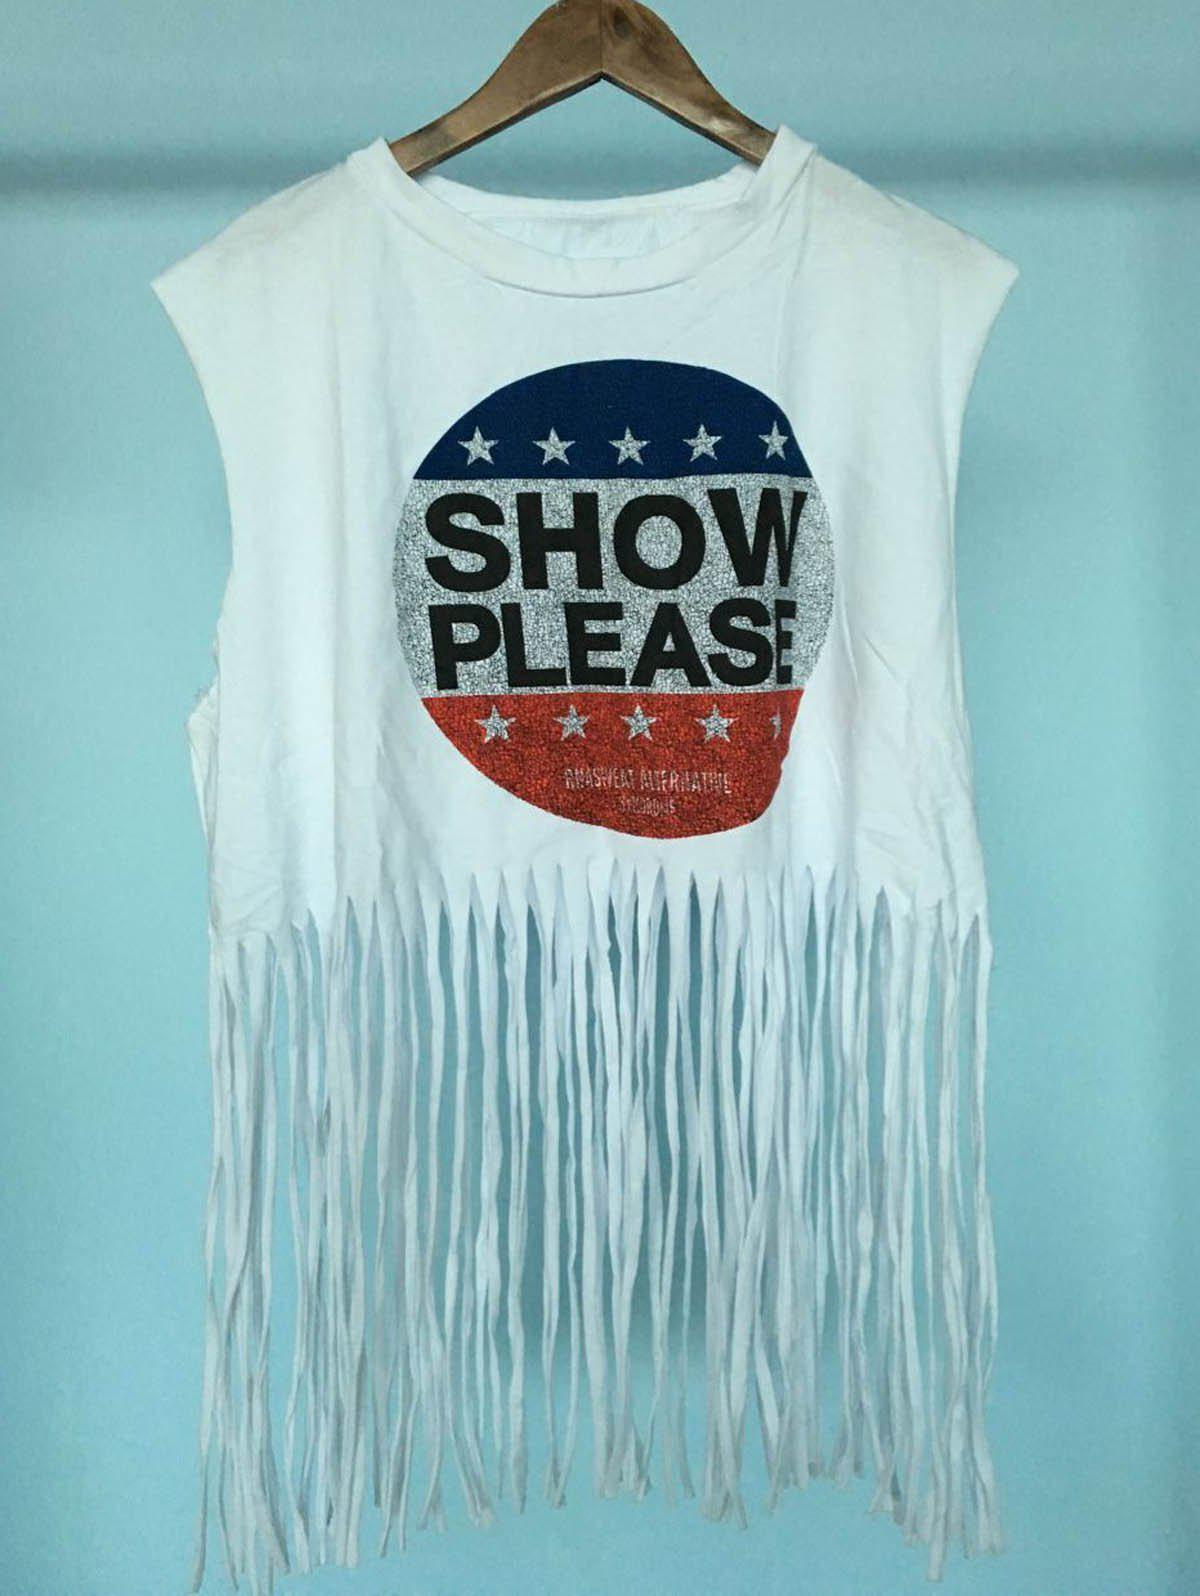 Stylish Women's Scoop Neck Fringe Print Sleeveless Blouse - WHITE ONE SIZE(FIT SIZE XS TO M)